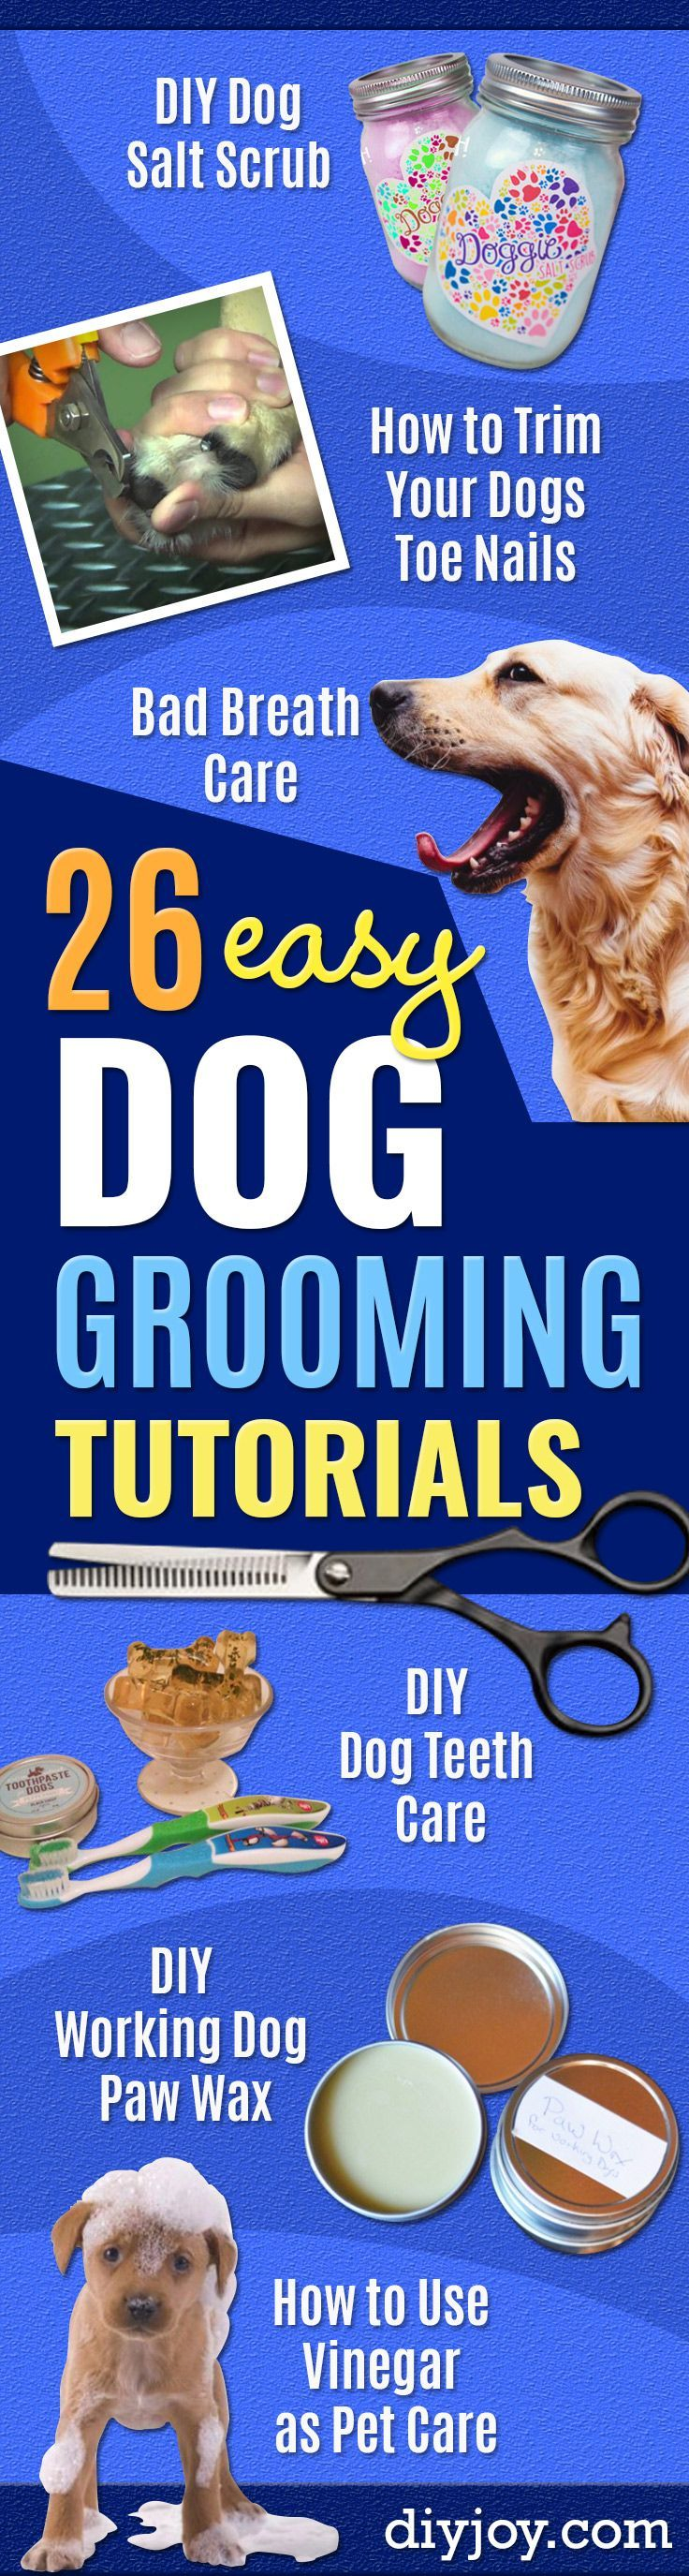 26 Dog Grooming Tutorials For A Clean Pup Diy dog stuff